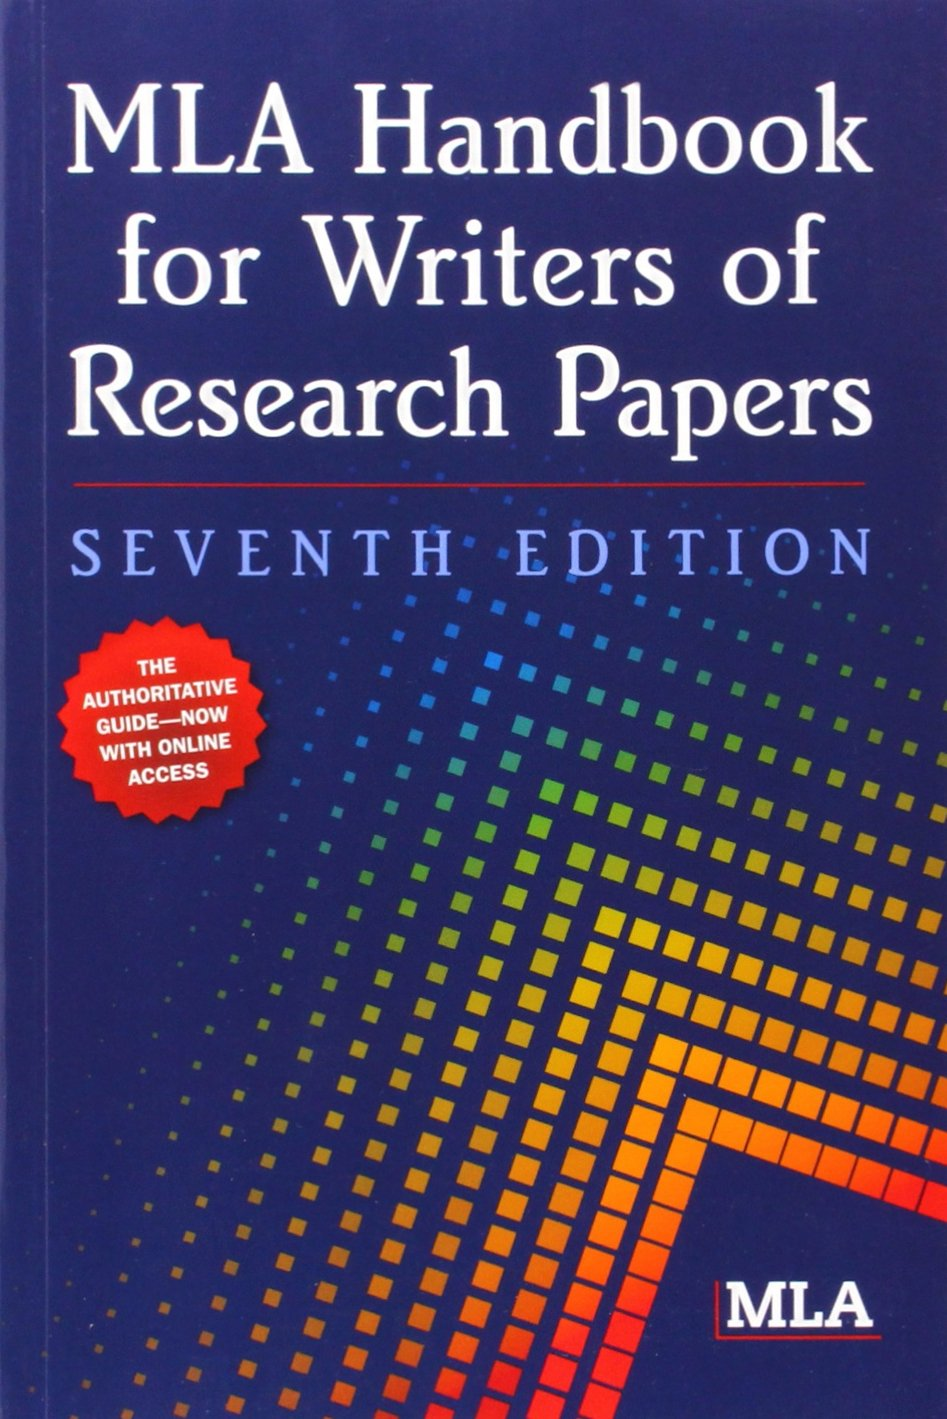 MLA Handbook for Writers of Research Papers (Mla Handbook for Writers of  Research Ppapers): Amazon.co.uk: Modern Language Association:  8601419603268: Books